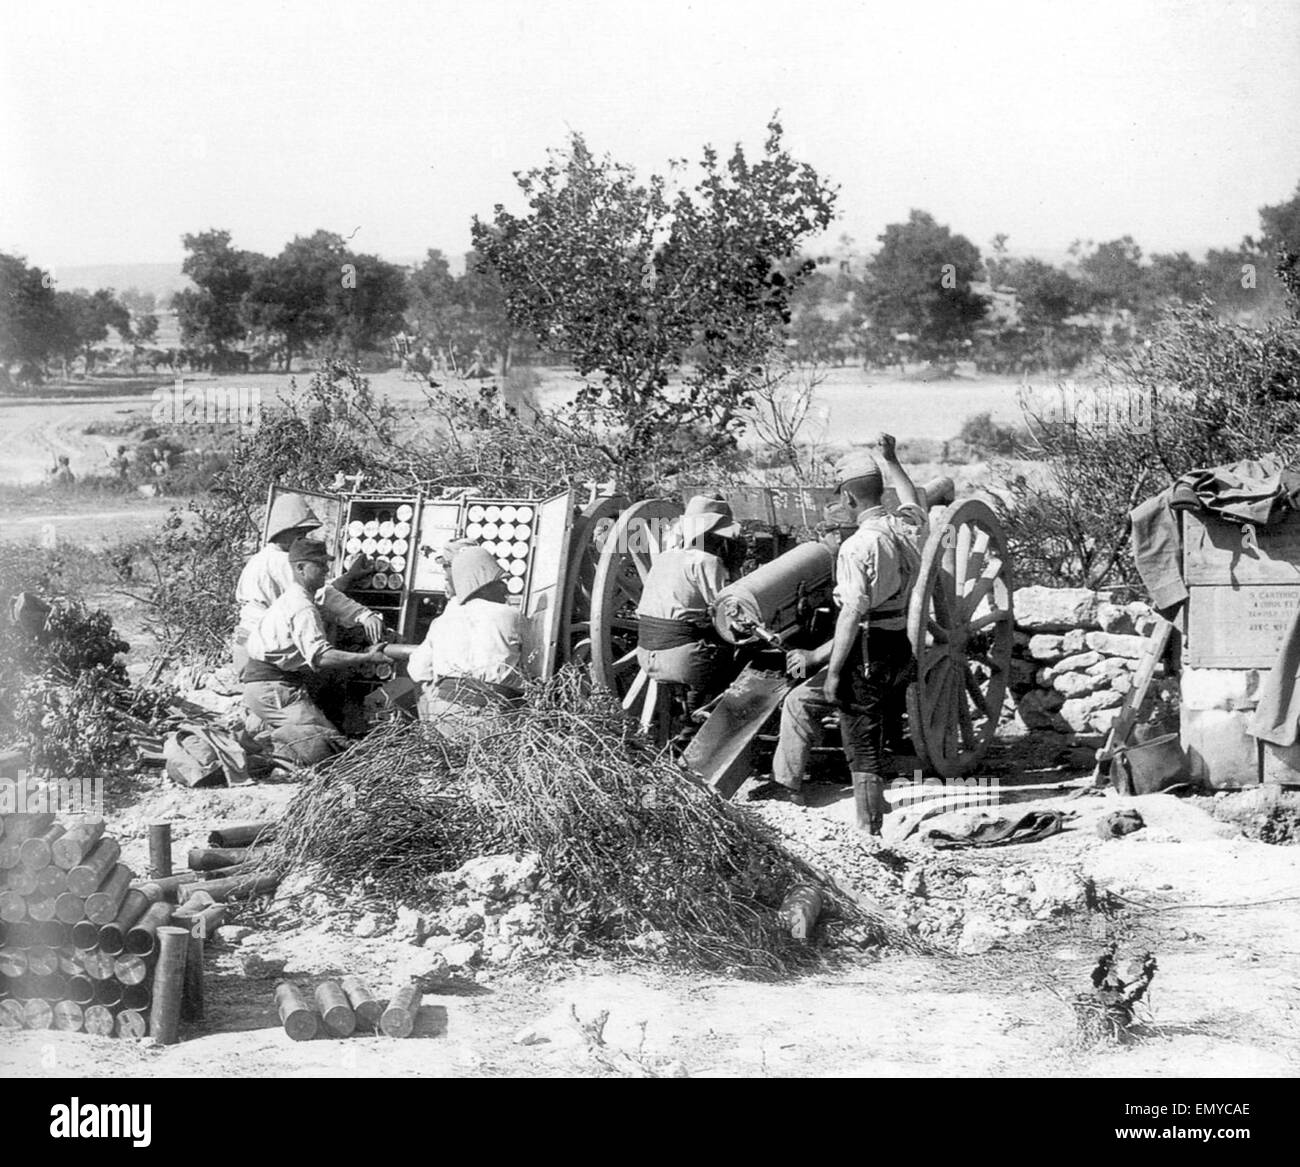 A French colonial 75 mm gun in action near Sedd el Bahr during the Third Battle of Krithia, 4 June 1915 Dardanelles - Stock Image